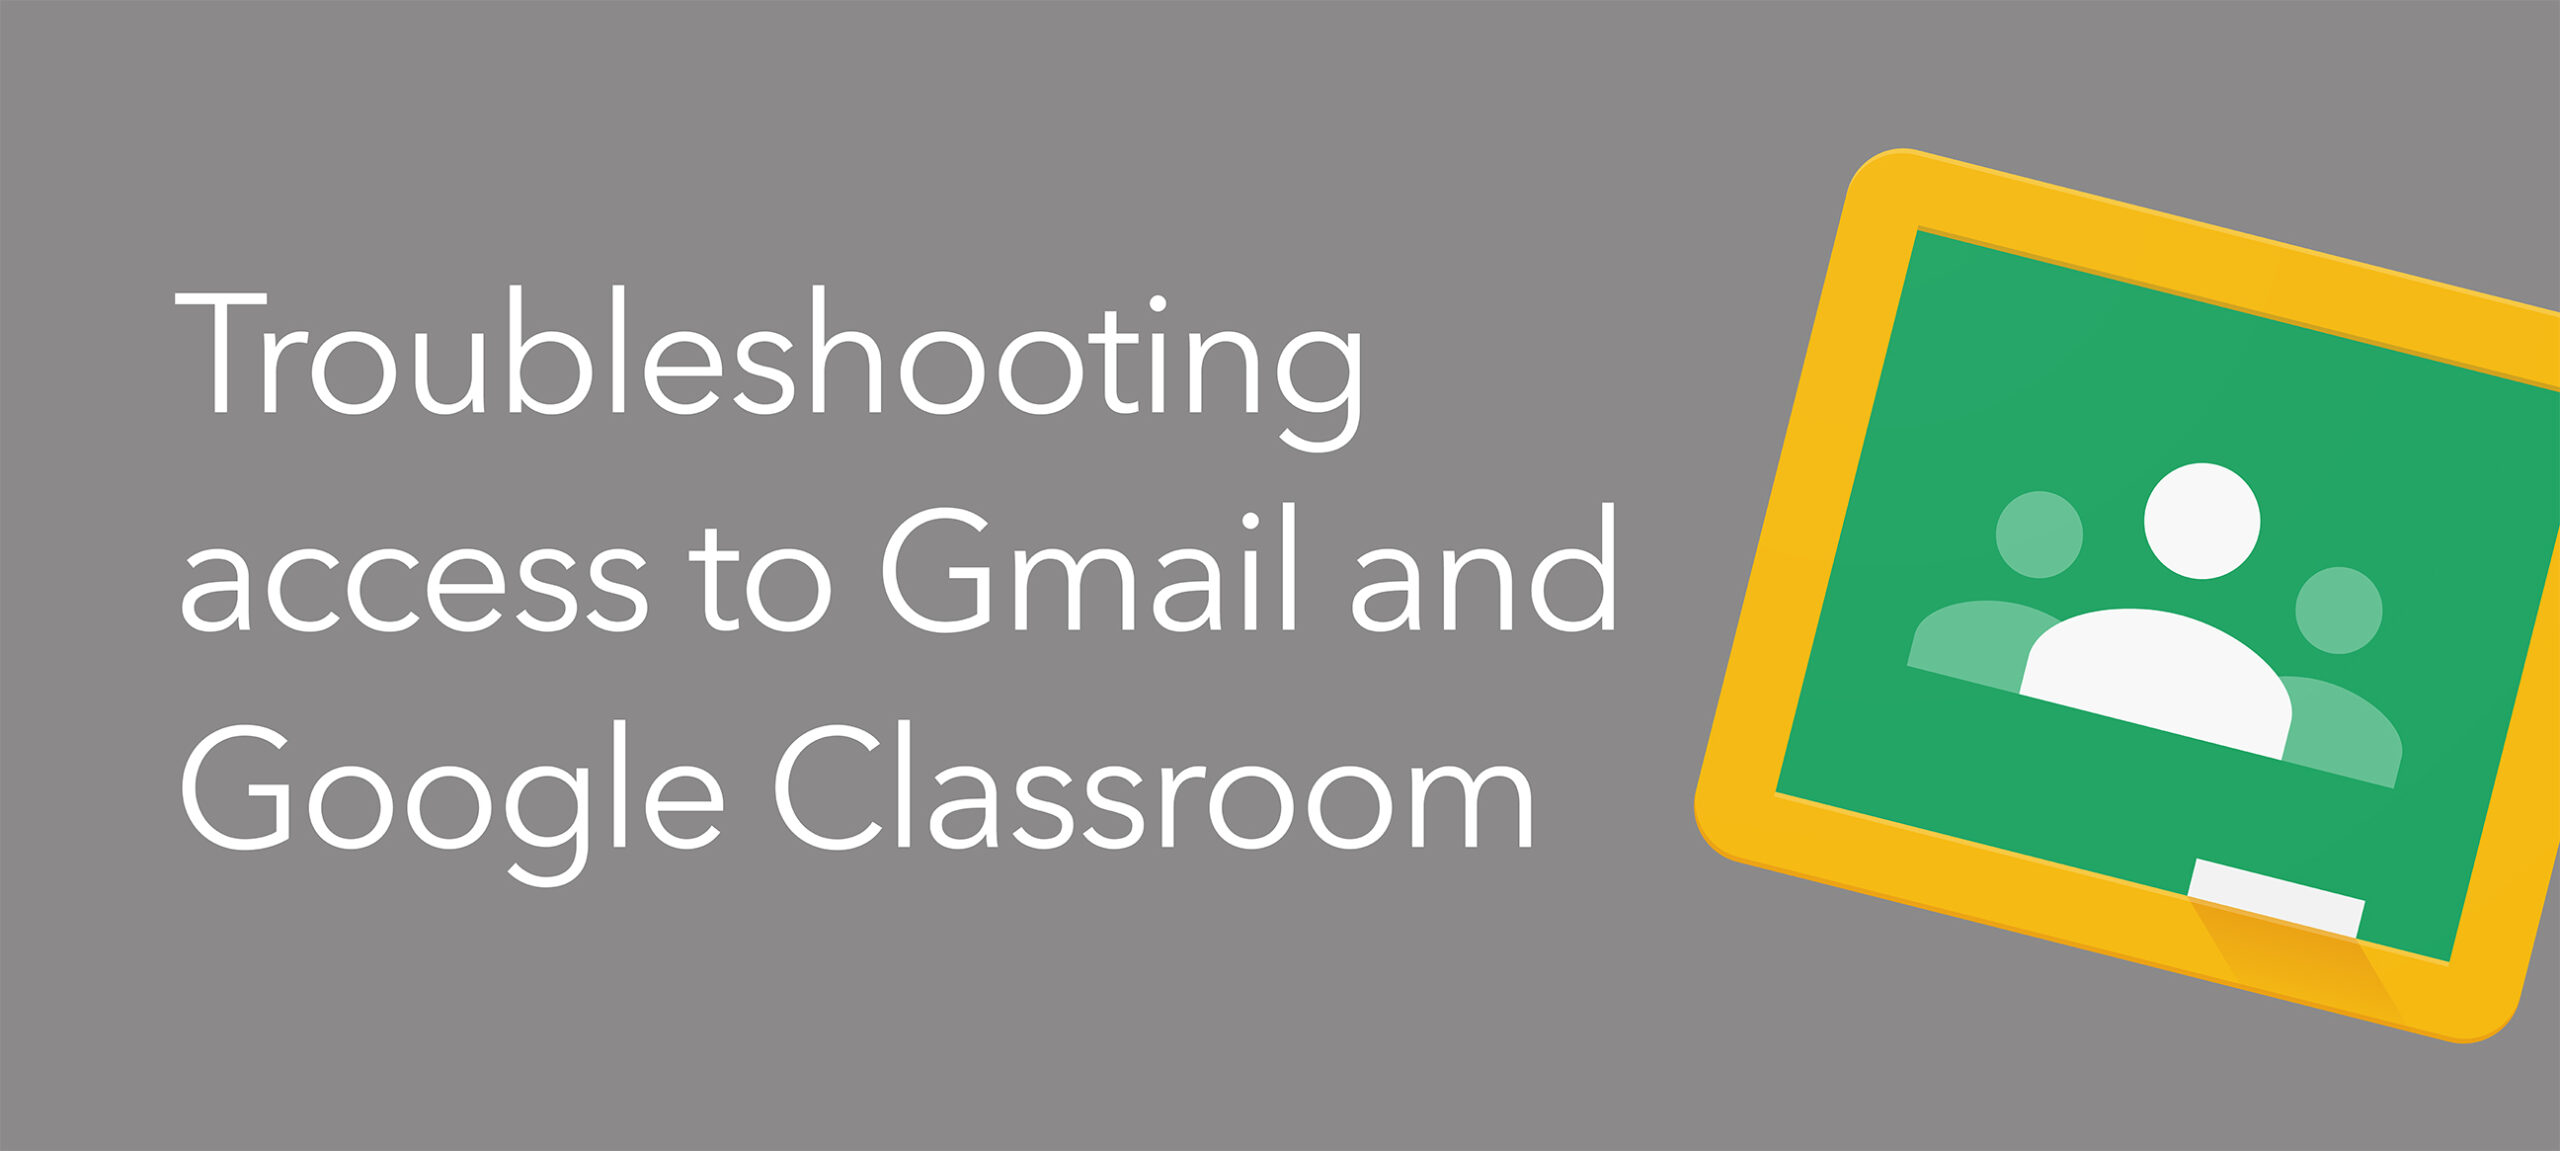 Troubleshooting access to Gmail and Google Classroom